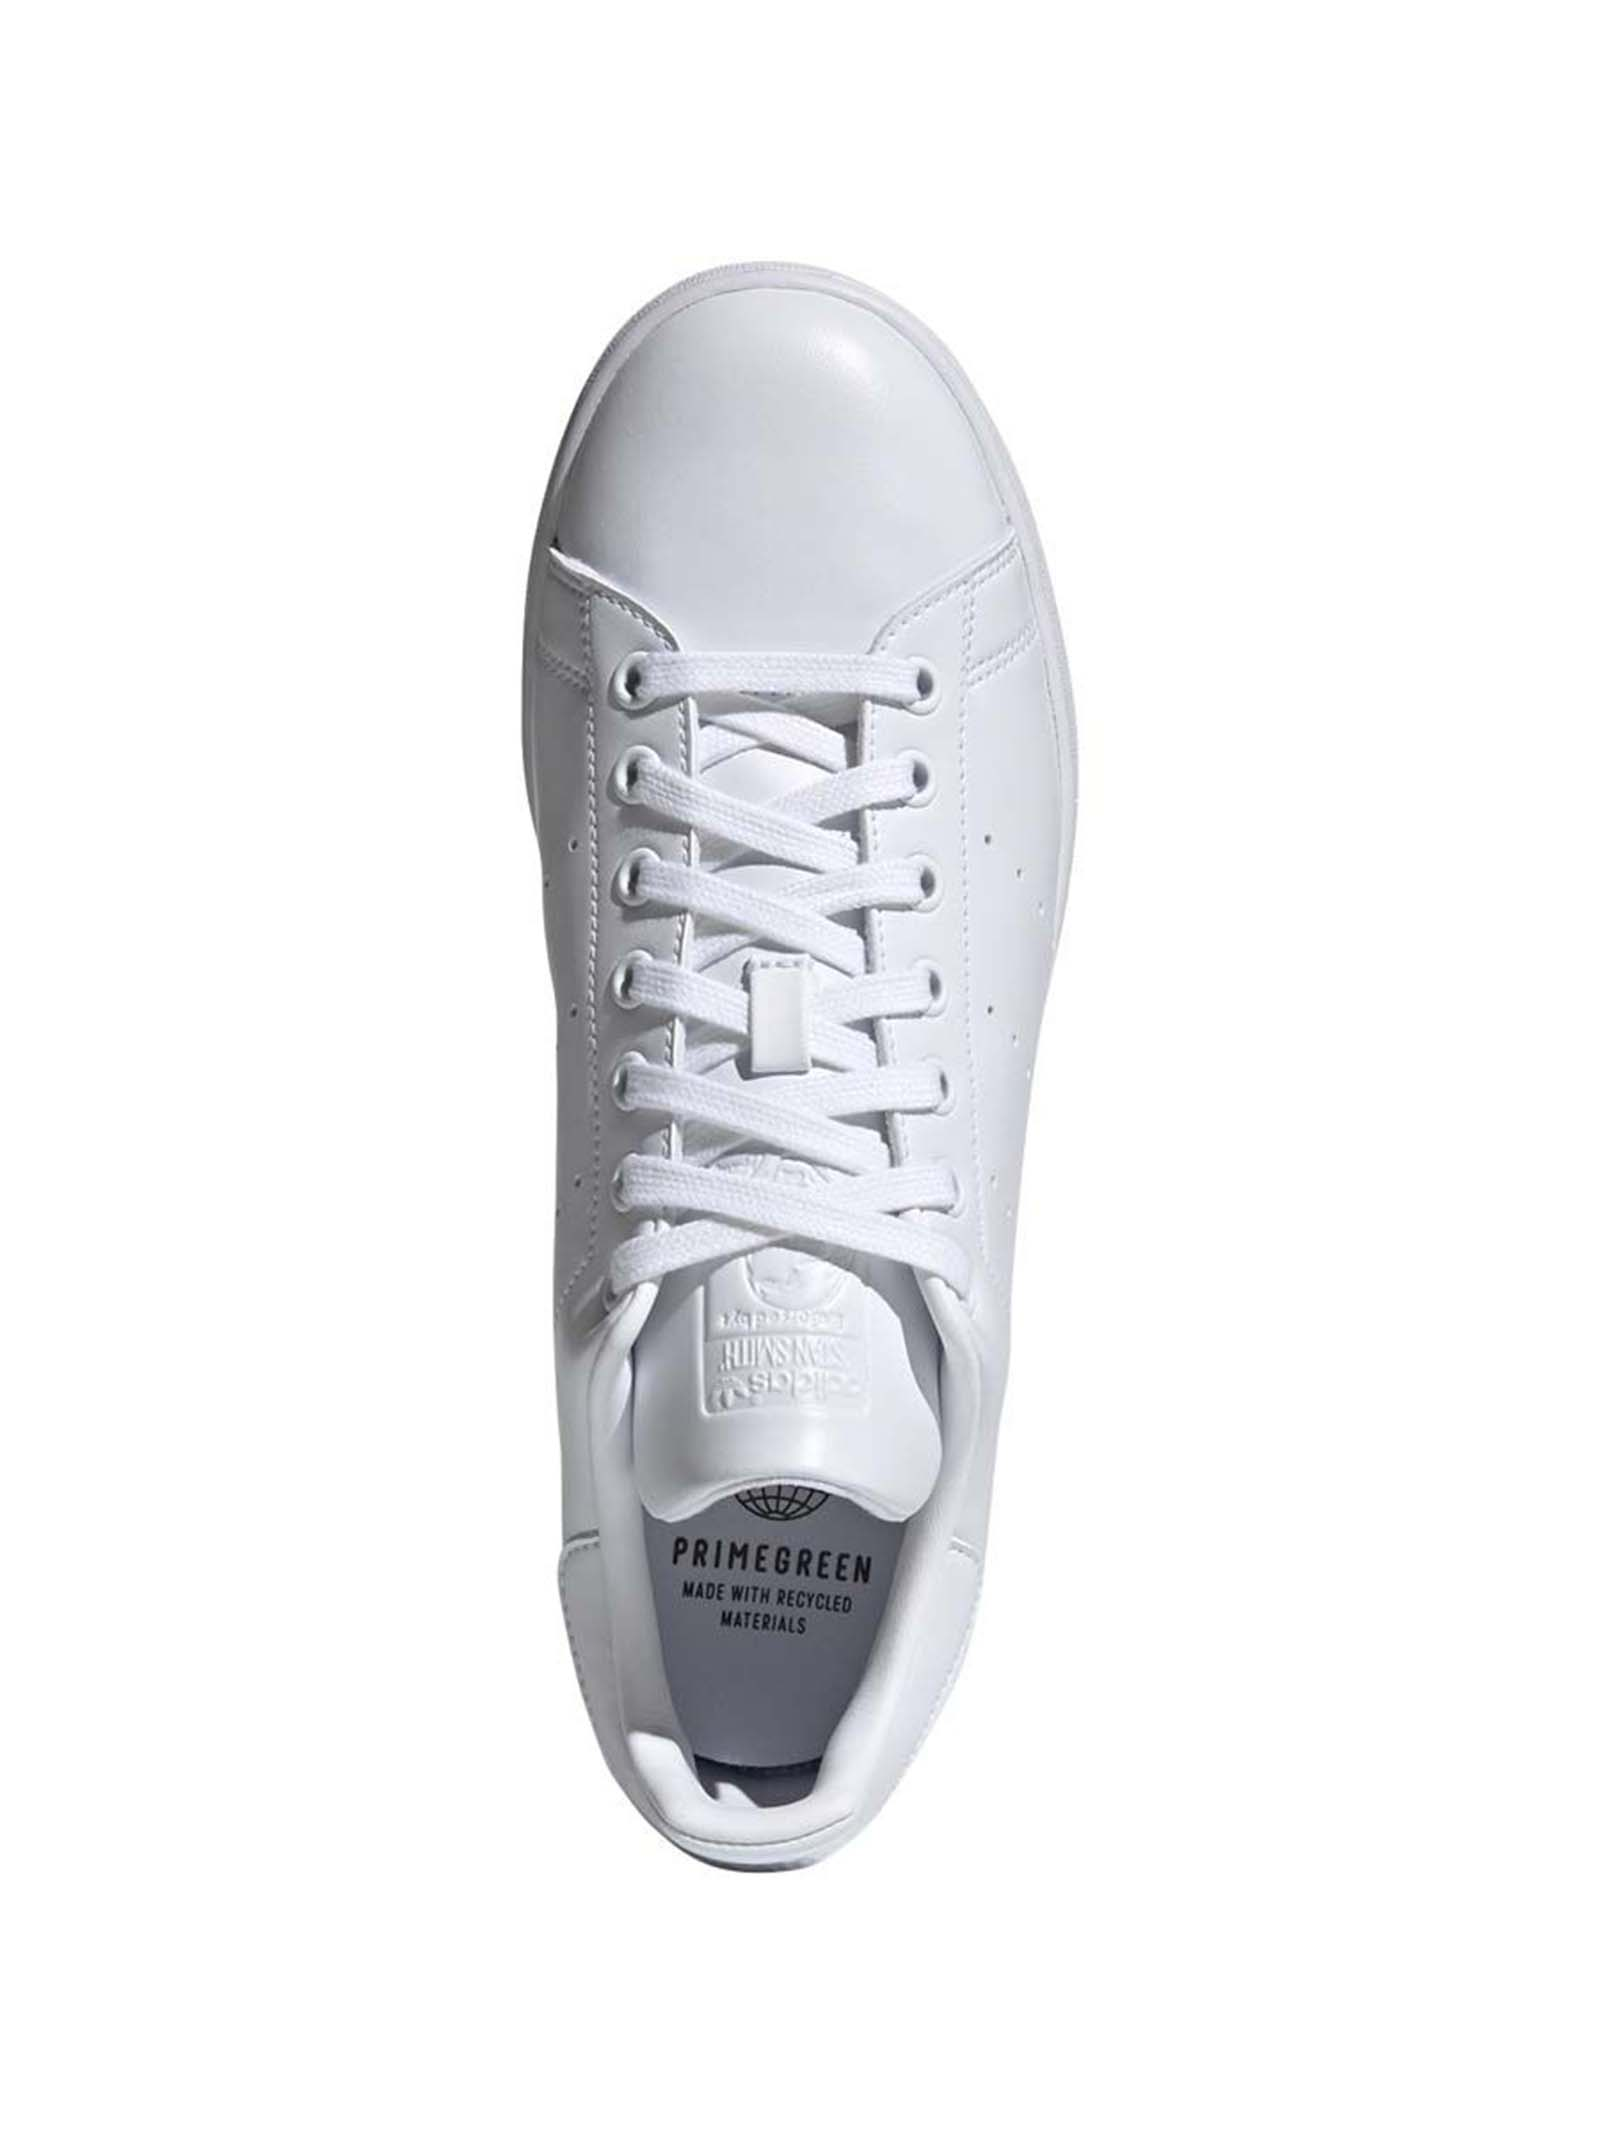 Men's Sneakers Stan Smith in White Eco-leather FX5500 Adidas   Sneakers   STAN SMITHFX5500